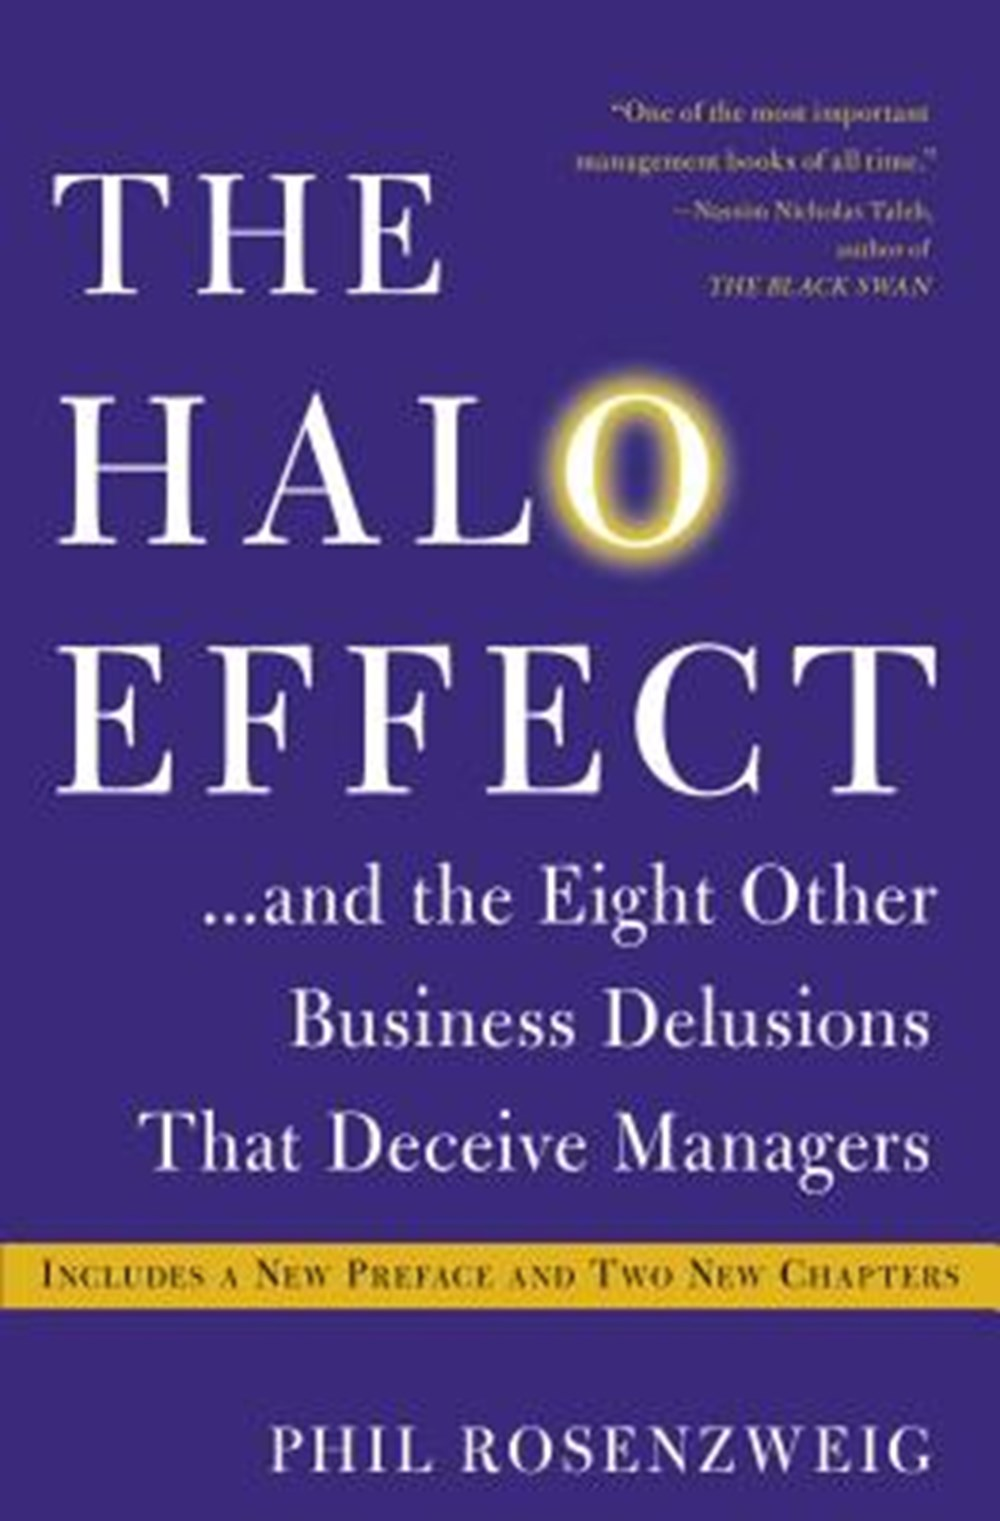 Halo Effect... and the Eight Other Business Delusions That Deceive Managers